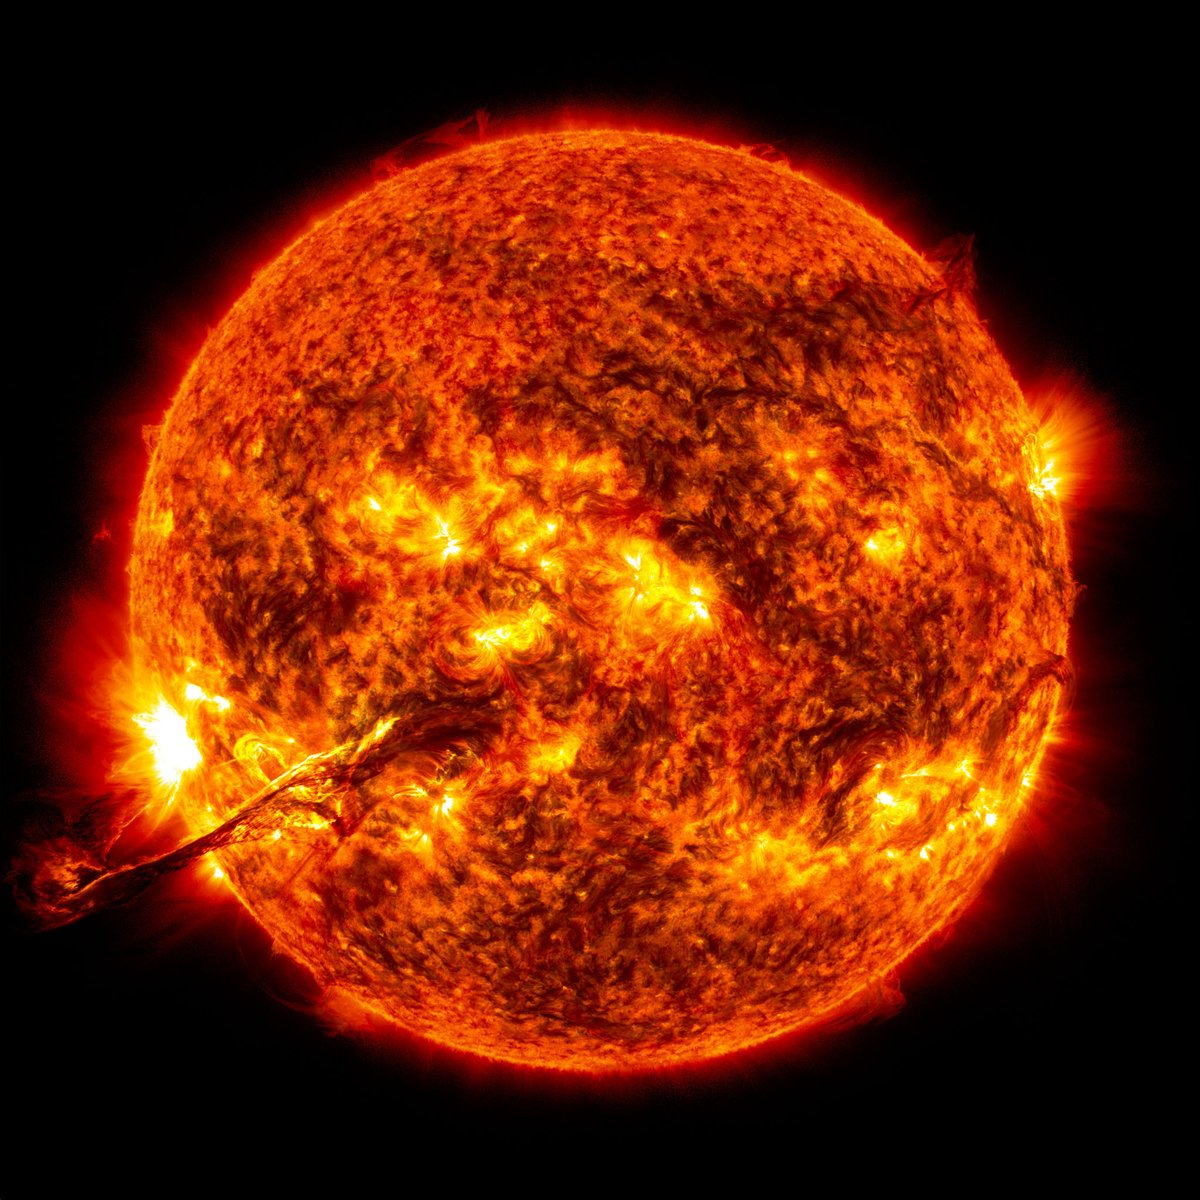 RT Interesting fact - The sun makes up 99.86% of the solar systems mass!  - embedded image